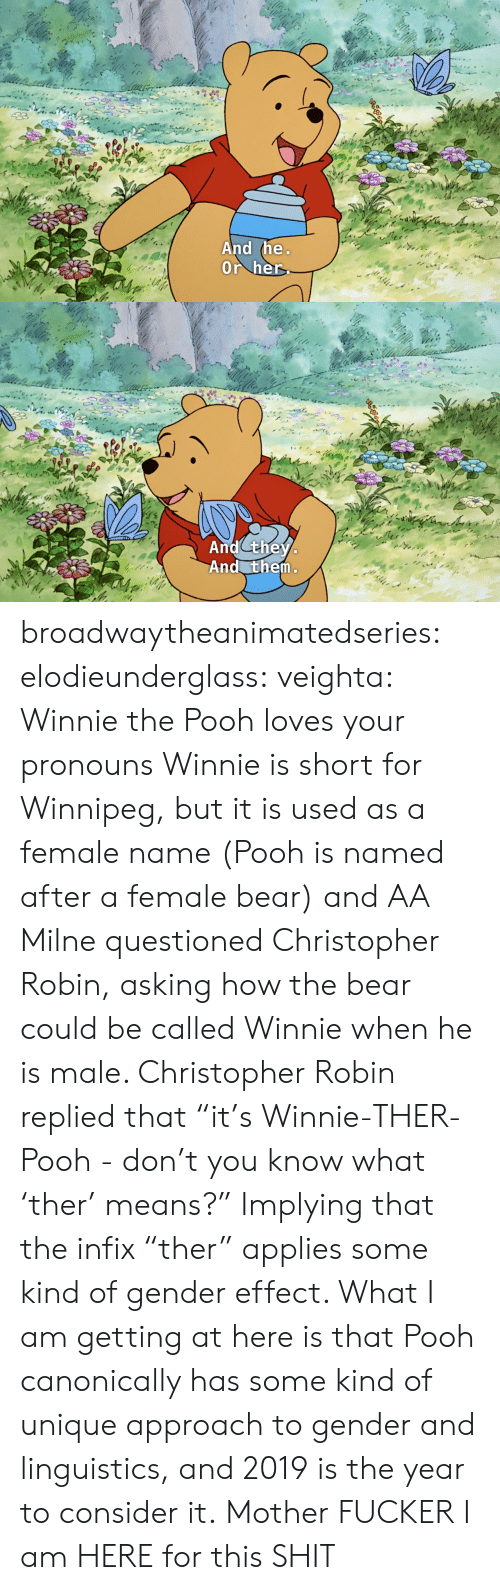 "Shit, Tumblr, and Winnie the Pooh: And the  Or her   And they  And them broadwaytheanimatedseries: elodieunderglass:  veighta: Winnie the Pooh loves your pronouns  Winnie is short for Winnipeg, but it is used as a female name (Pooh is named after a female bear) and AA Milne questioned Christopher Robin, asking how the bear could be called Winnie when he is male. Christopher Robin replied that ""it's Winnie-THER-Pooh - don't you know what 'ther' means?"" Implying that the infix ""ther"" applies some kind of gender effect.  What I am getting at here is that Pooh canonically has some kind of unique approach to gender and linguistics, and 2019 is the year to consider it.   Mother FUCKER I am HERE for this SHIT"